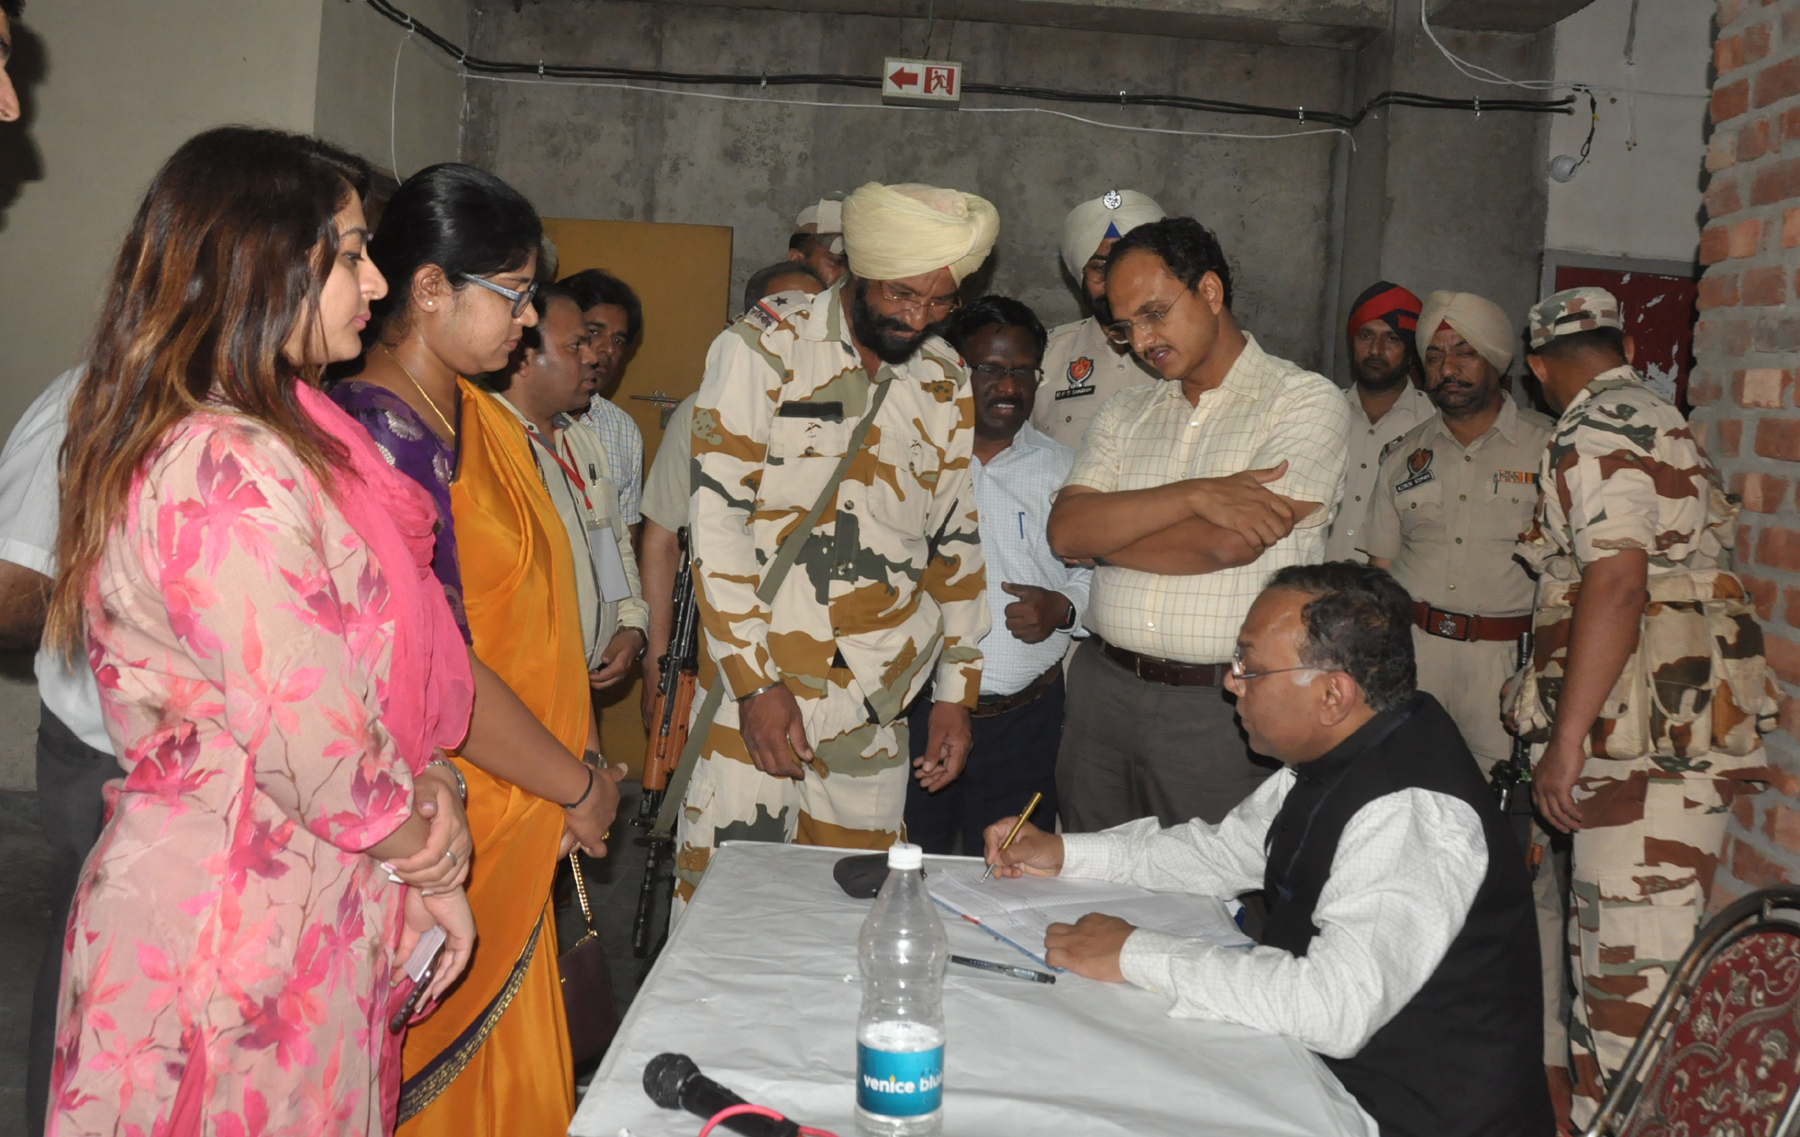 900 SECURITY PERSONNEL FROM STATE POLICE, PAP AND PARA MILITARY FORCES DEPLOYED FOR PROTECTION OF EVMs ROUND THE CLOCK